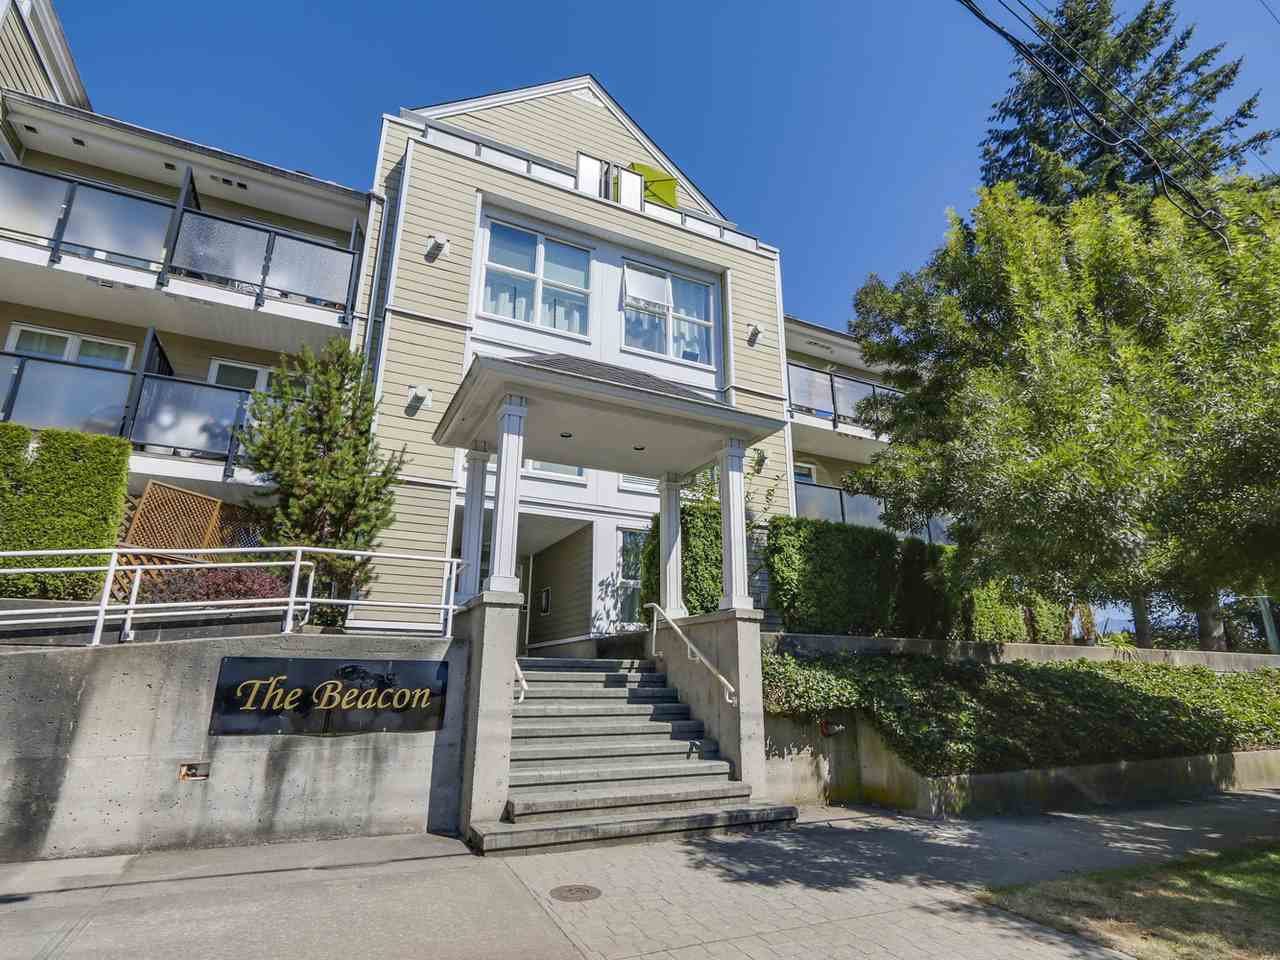 "Main Photo: 206 1519 GRANT Avenue in Port Coquitlam: Glenwood PQ Condo for sale in ""THE BEACON"" : MLS®# R2101185"